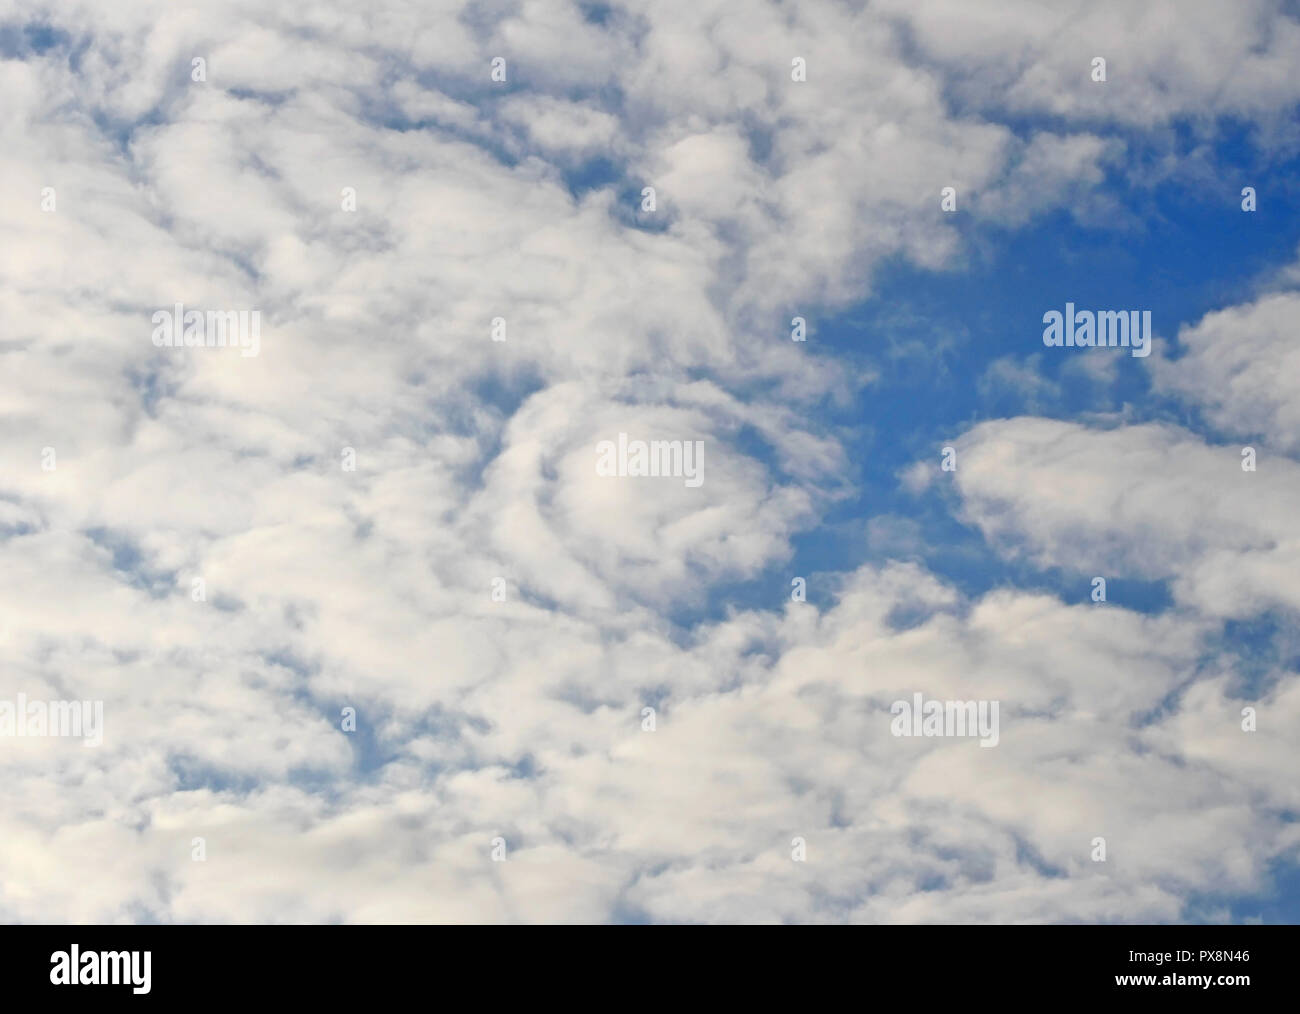 Blanket of Stratus Clouds forming against a blue summer sky Stock Photo